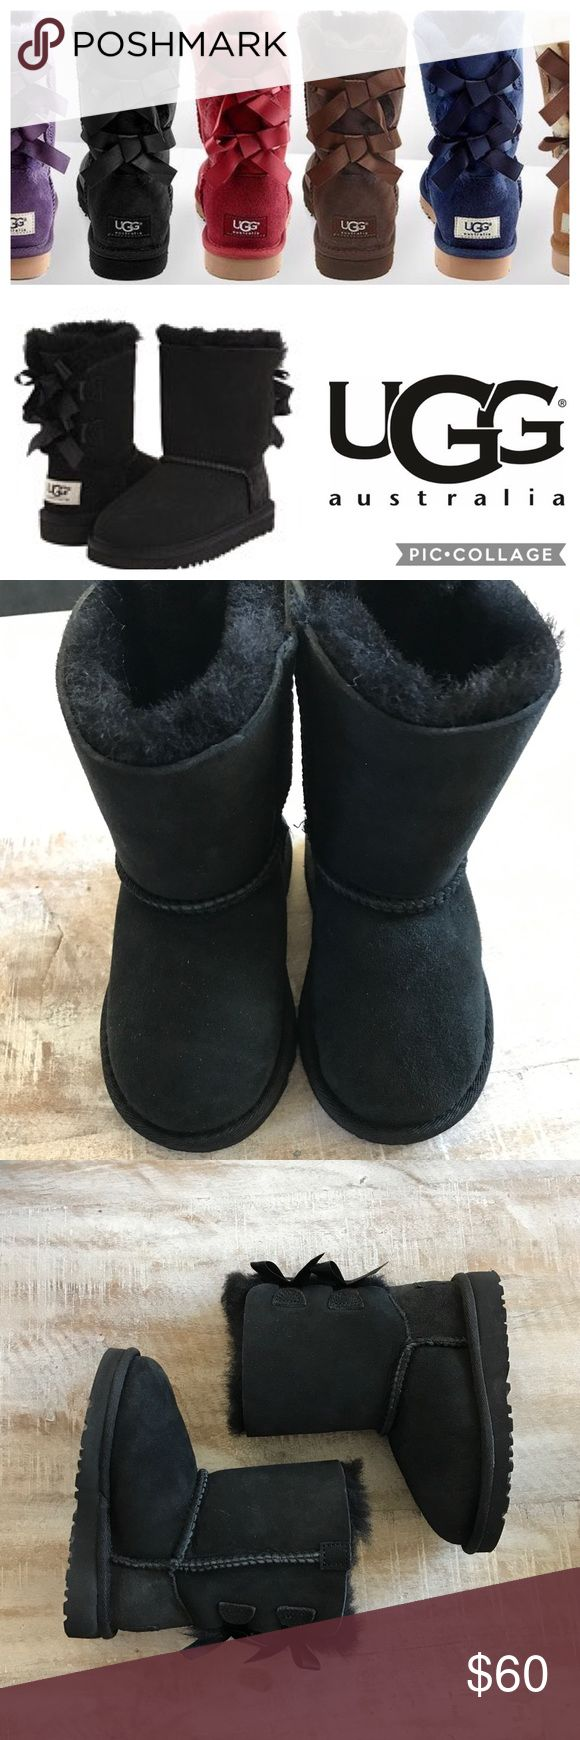 ❄️KIDS!! UGG Toddler's Bailey Bow Boot/Blk/sz 8 Keep your little one's feet warm this season with the Bailey Bow Boot from UGG! Two fixed bows enhance the sweetness of this iconic style. A light, flexible outsole and plush Twinface sheepskin keep feet cozy. Twinface and suede UGGpure™ wool insole EVA outsole.                                                                          This pair is a dept store closeout/customer return. Looks brand new and perfect! No box. 🚫no trades, Low offers…